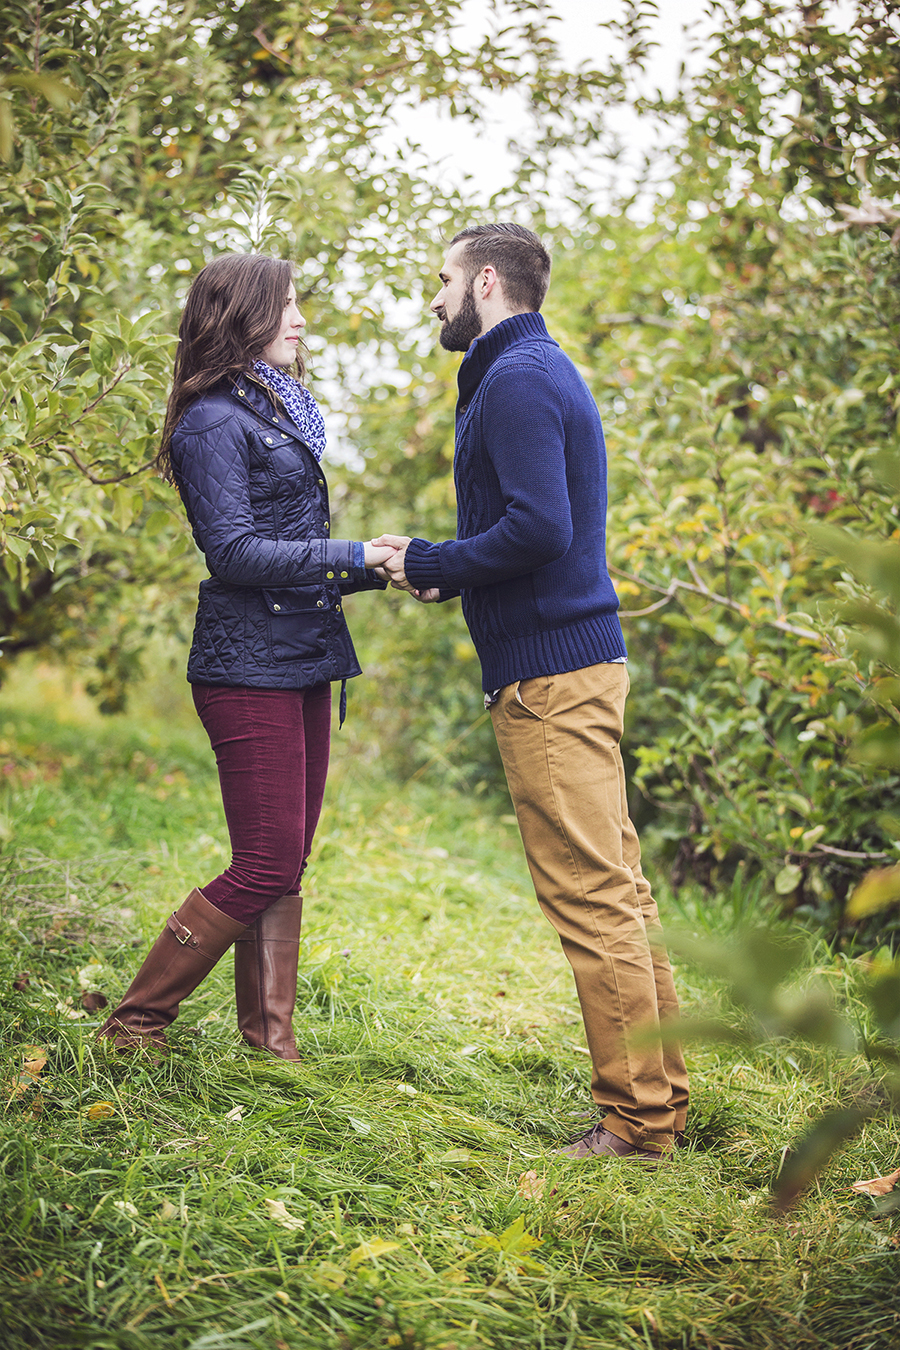 Image 4 of Kaitlyn and Michael's Proposal in the Blue Ridge Mountains